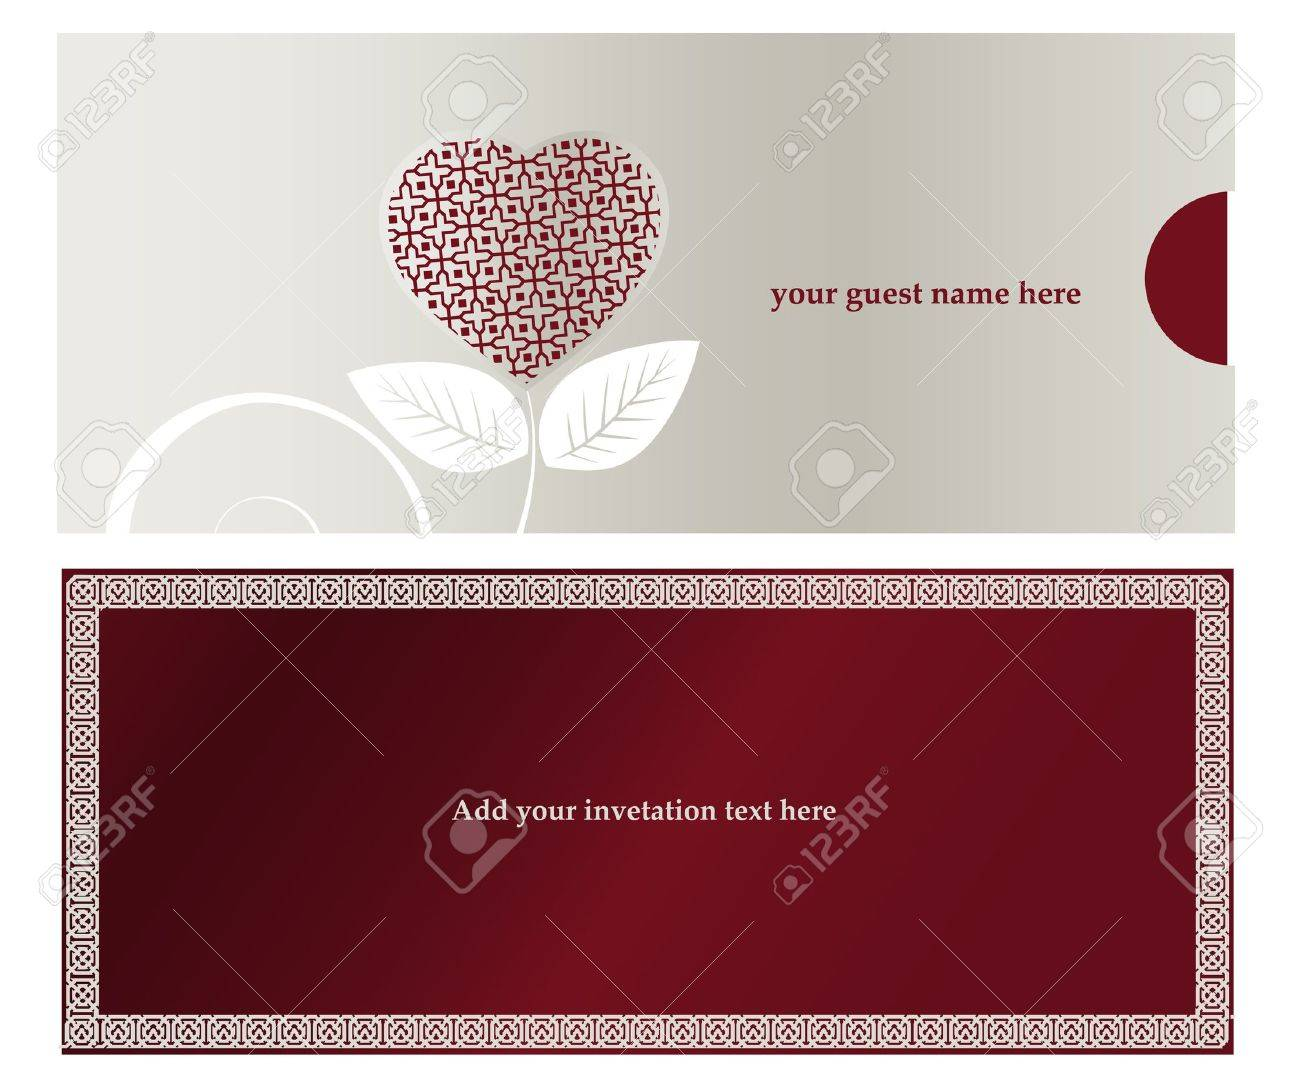 Invitation card for Wedding  or engaged party. Stock Vector - 7864672